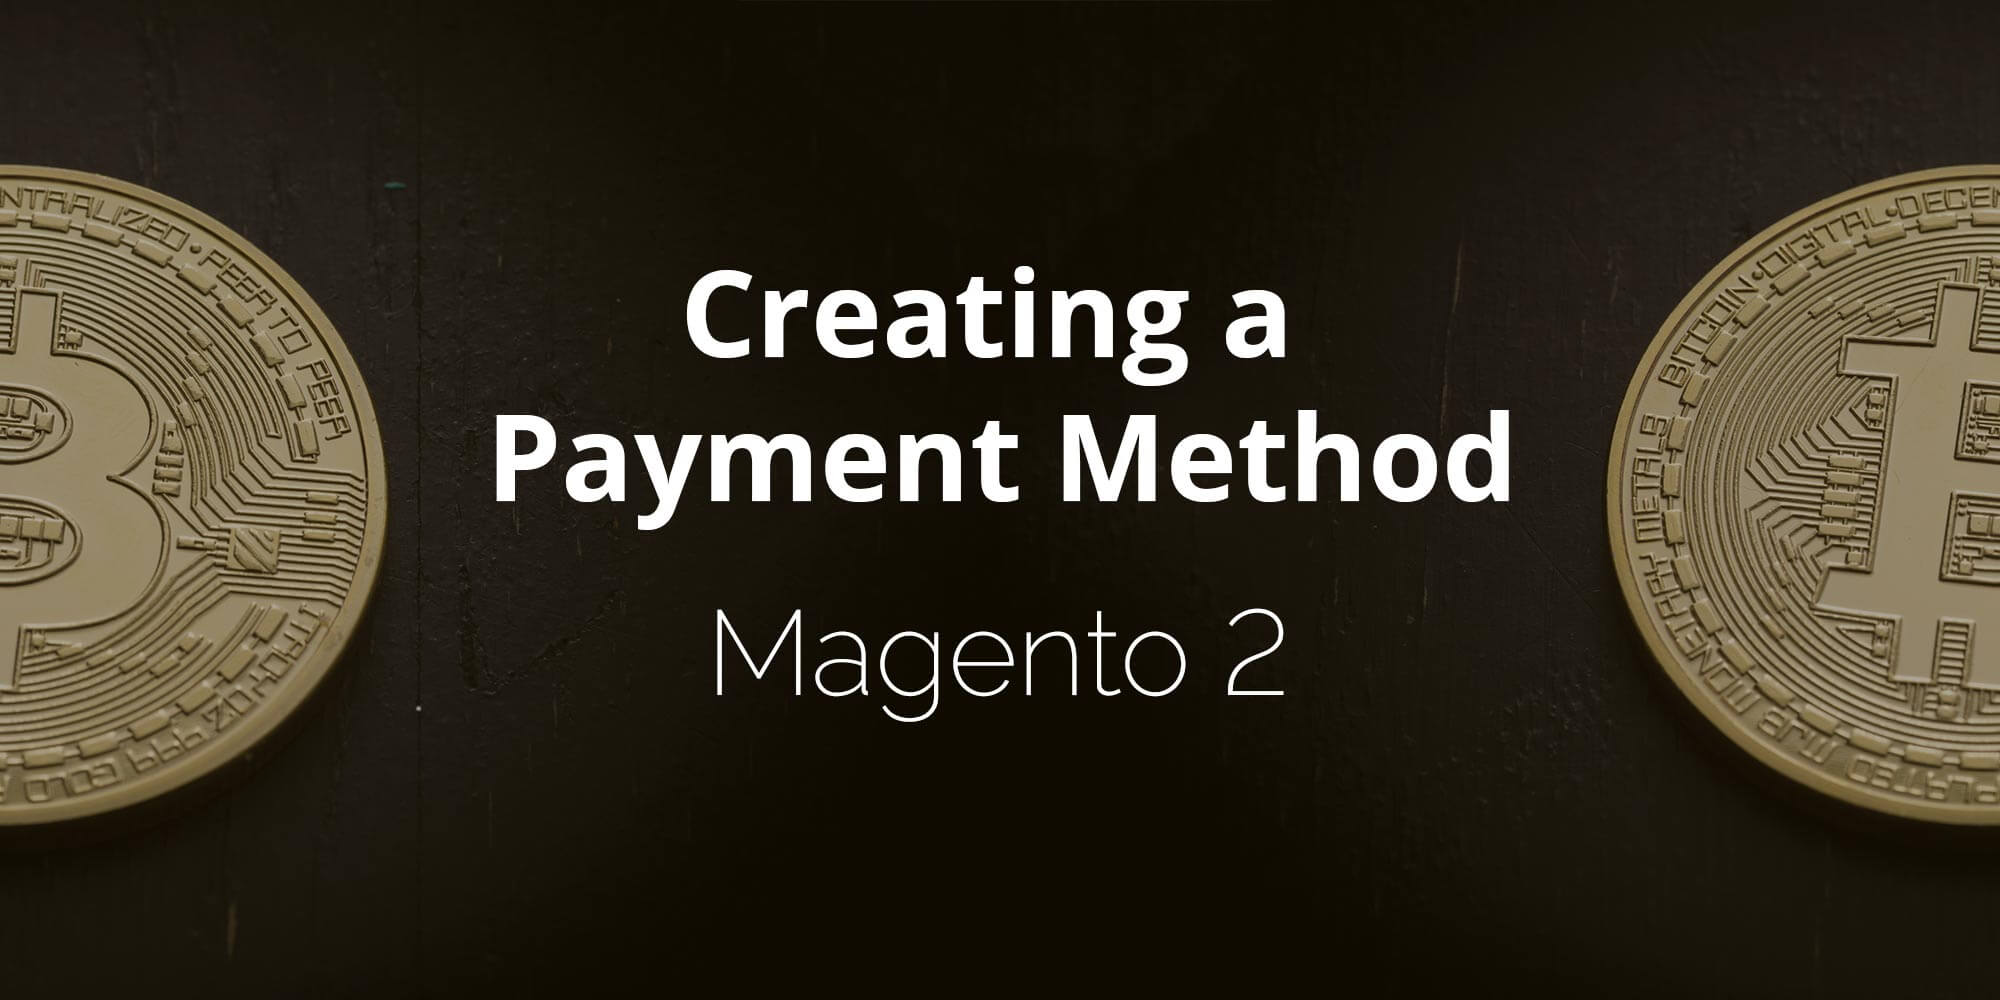 How to Create a Payment Method in Magento 2 - Classy Llama